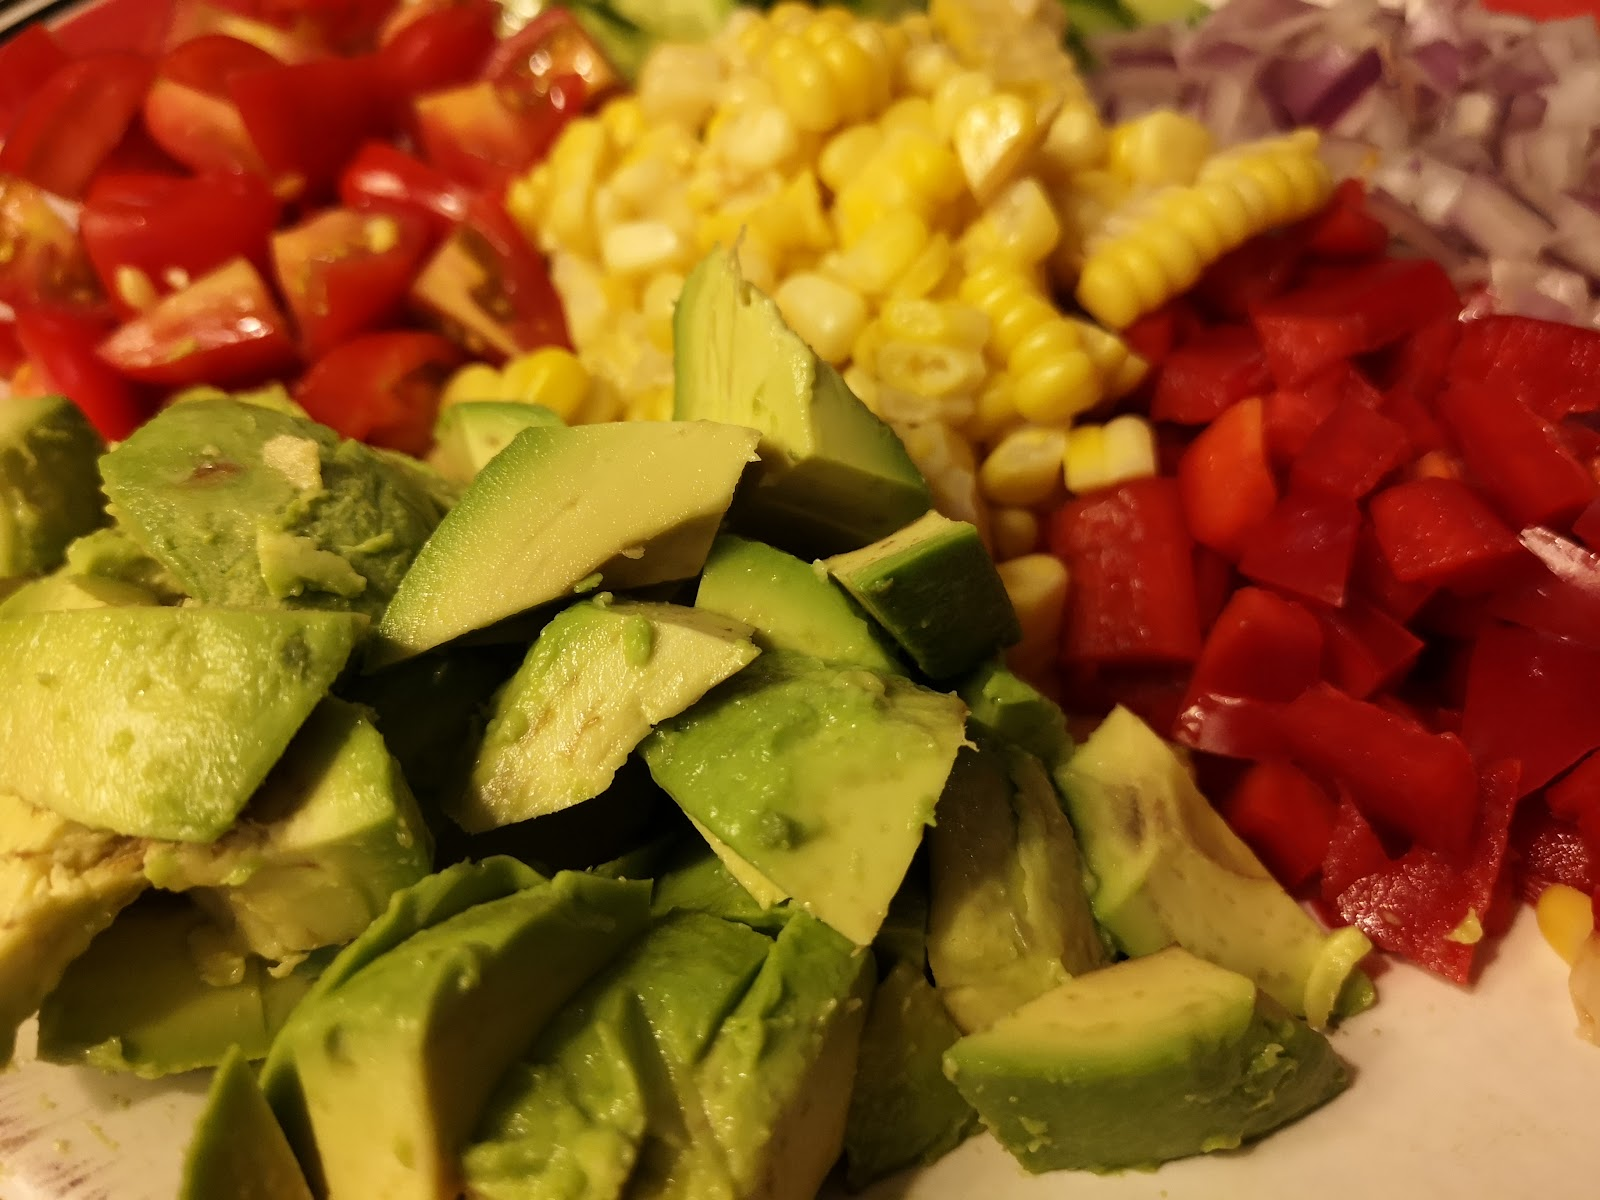 Mexican corn salad, Mexican Taco, Corn, Black Bean and Avocados from Mexico Salad, recipes, keto recipes, low carb recipes, atkind recipes